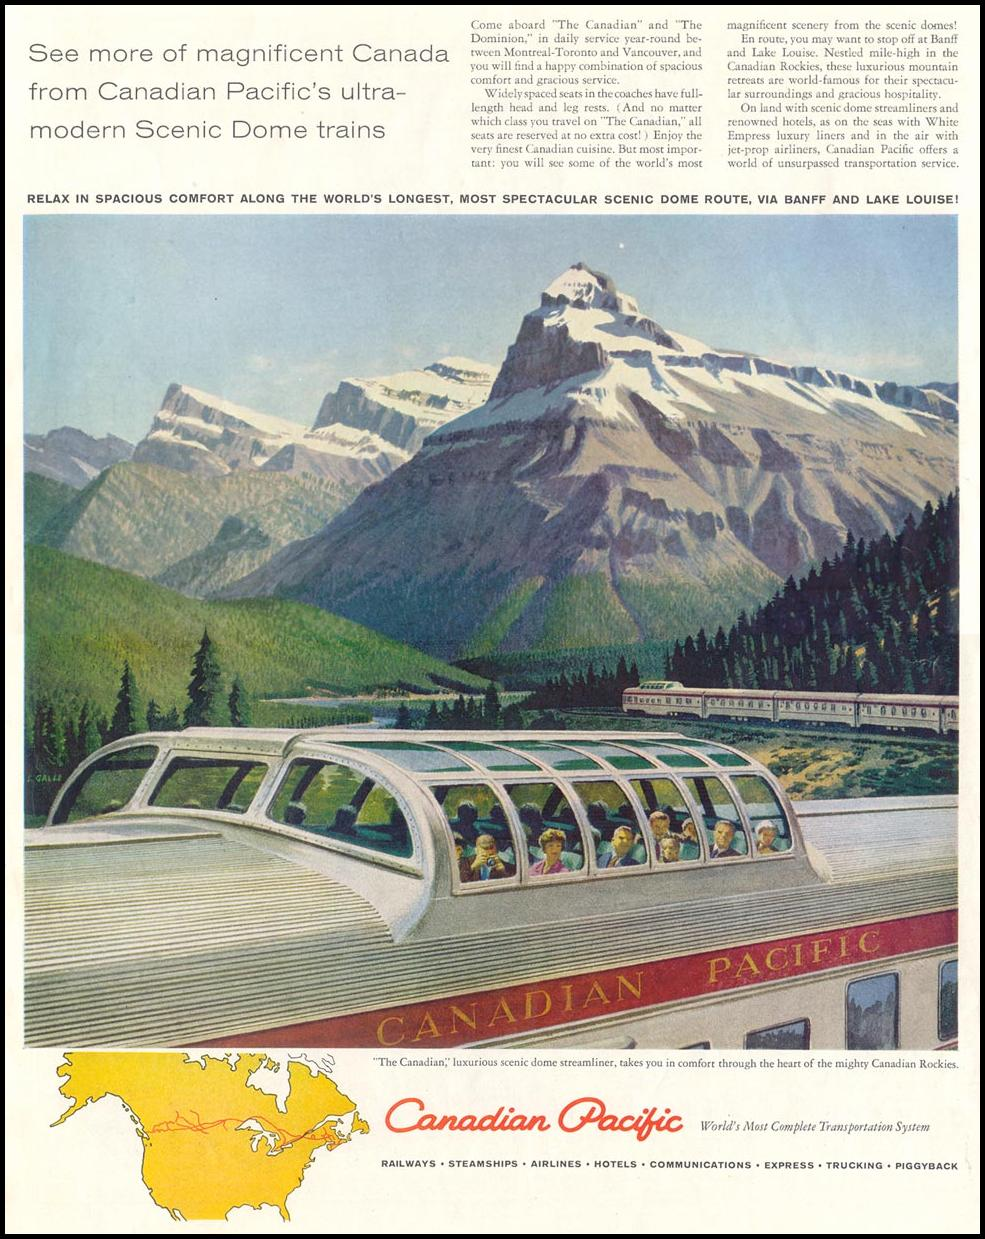 RAIL TRAVEL SATURDAY EVENING POST 05/02/1959